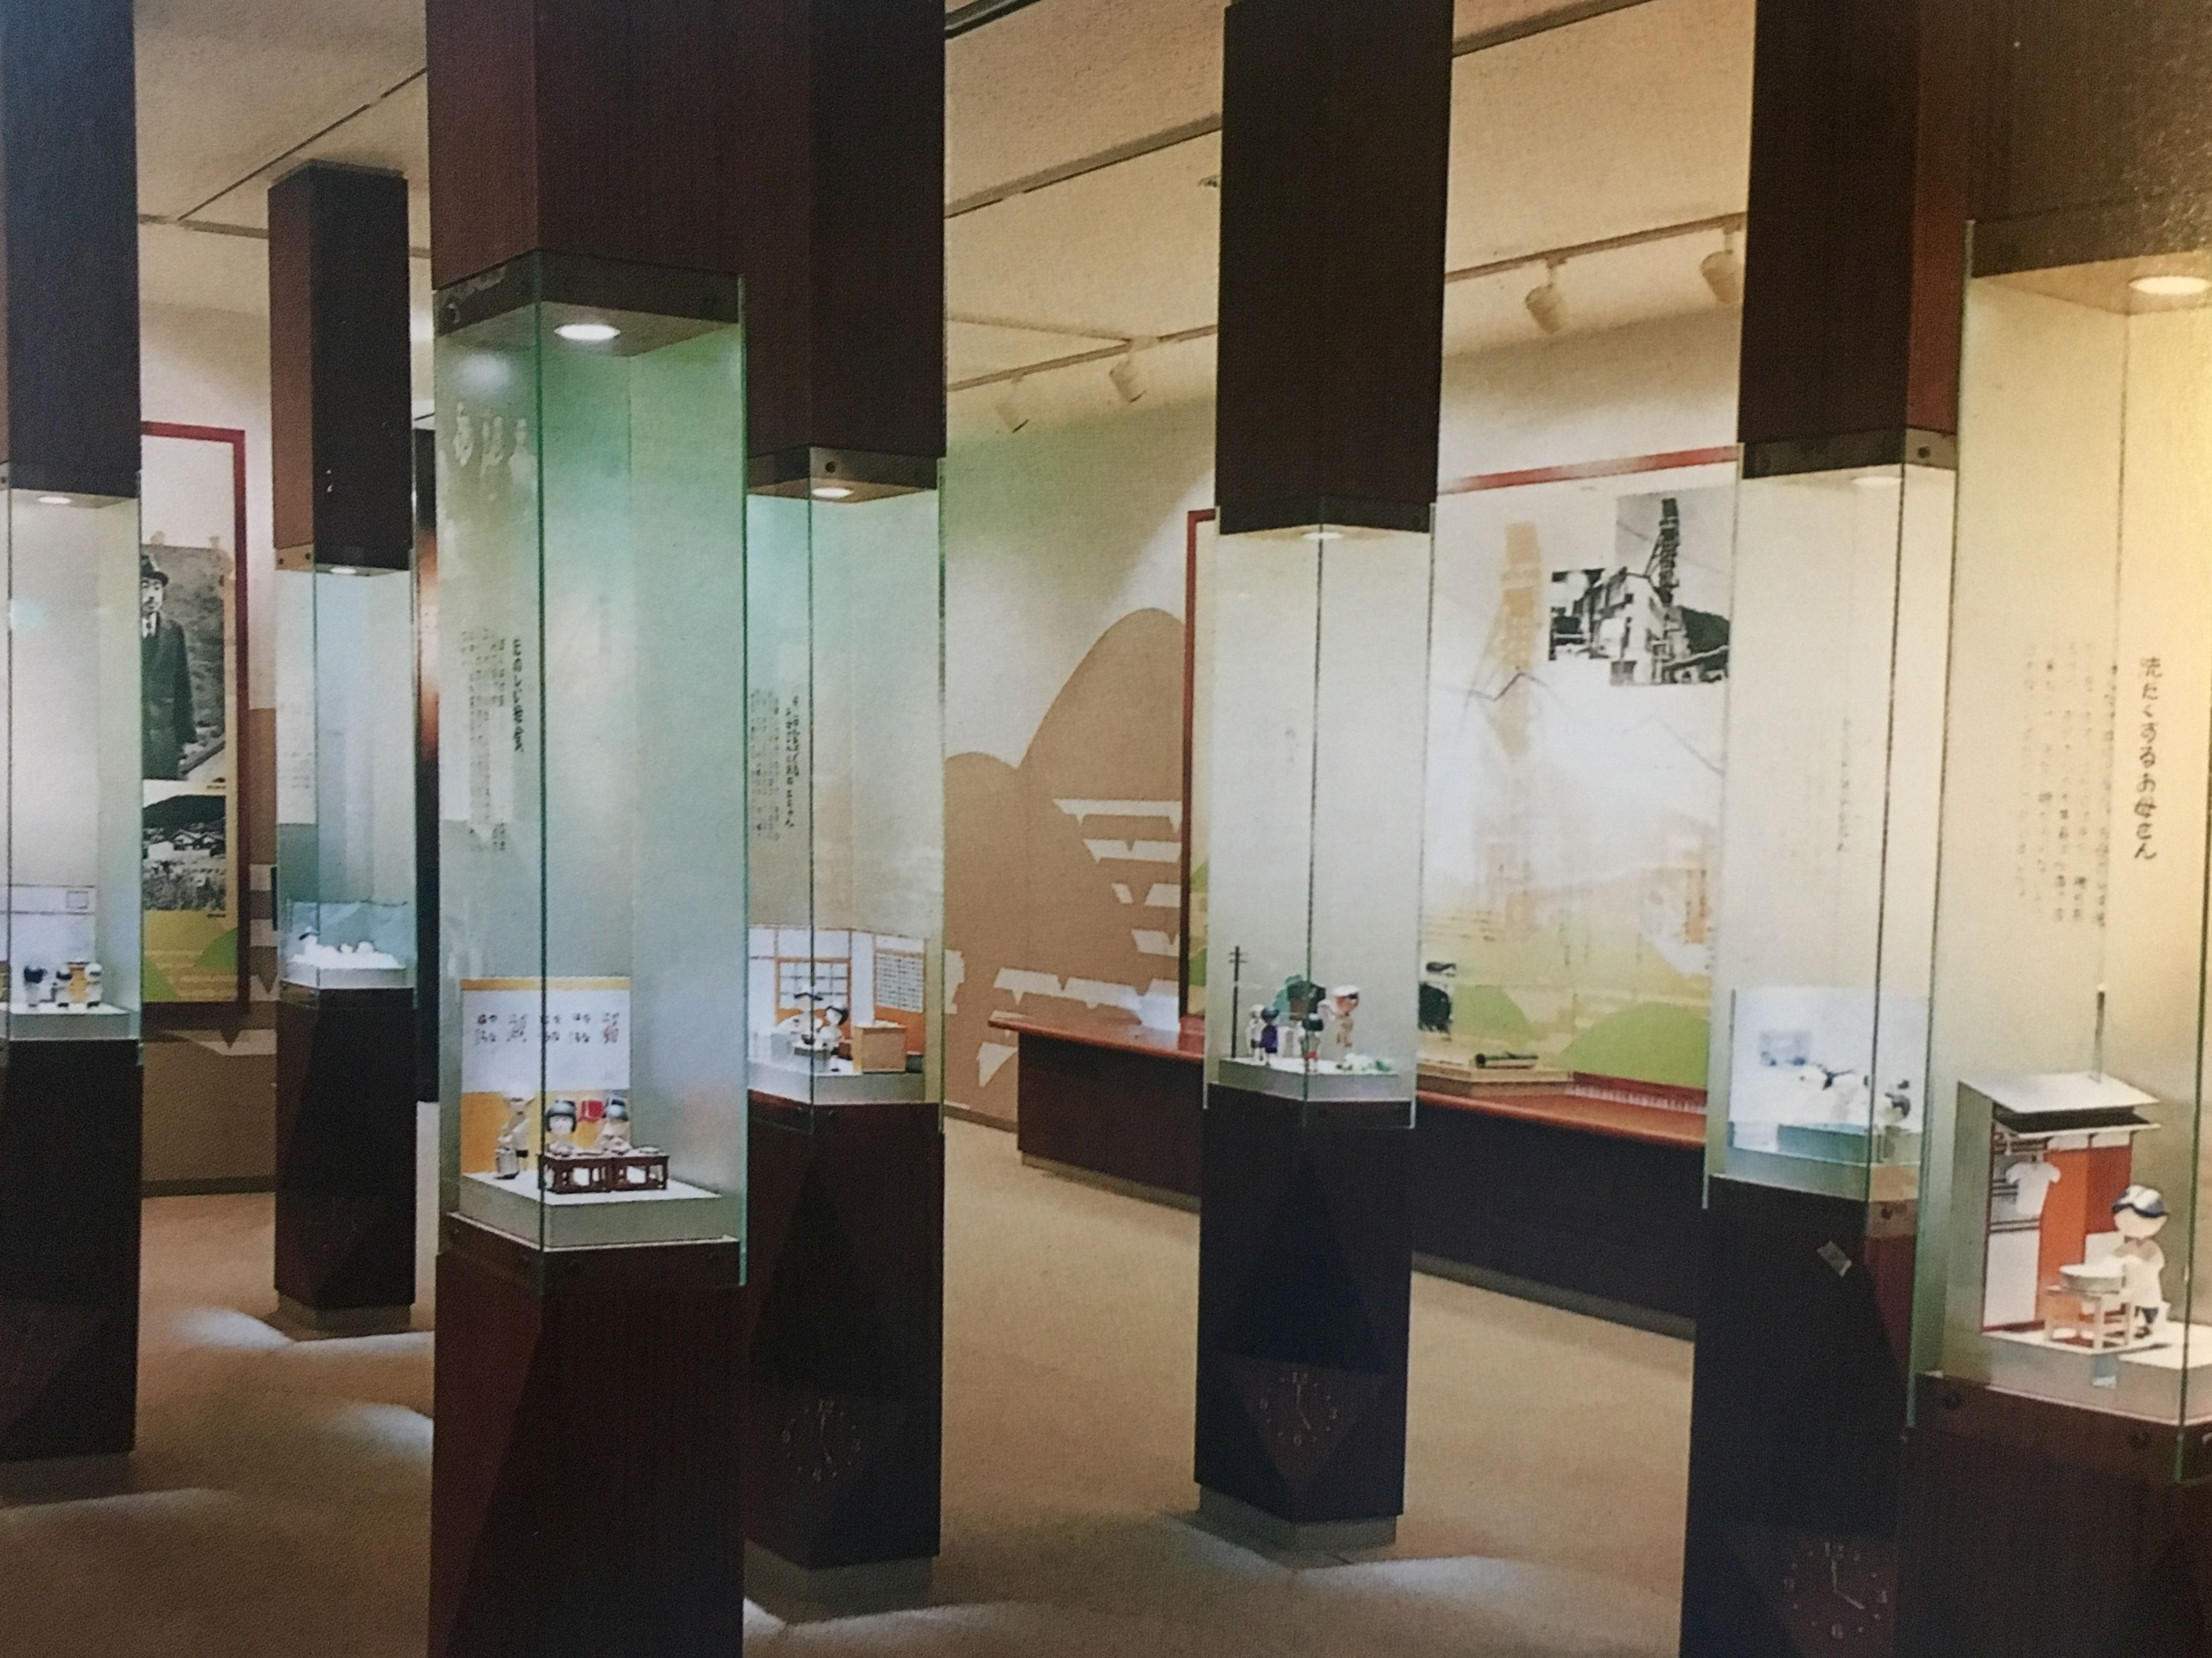 Exhibit Cabinets That Include Glass Cases To Protect Objects